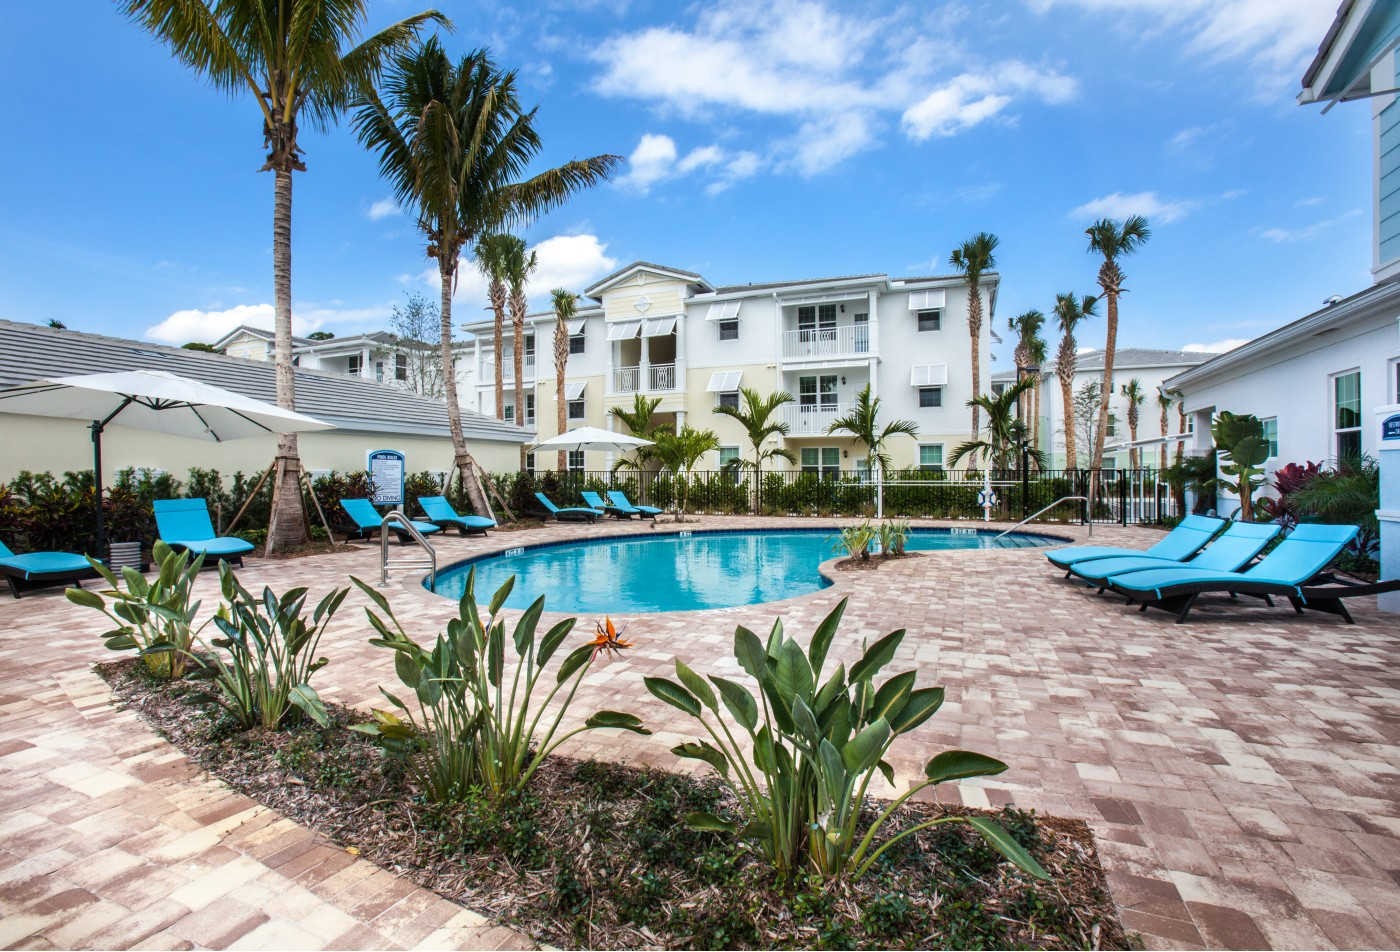 Swimming Pool | Apartment Homes in Boynton Beach, FL | High Ridge Landing